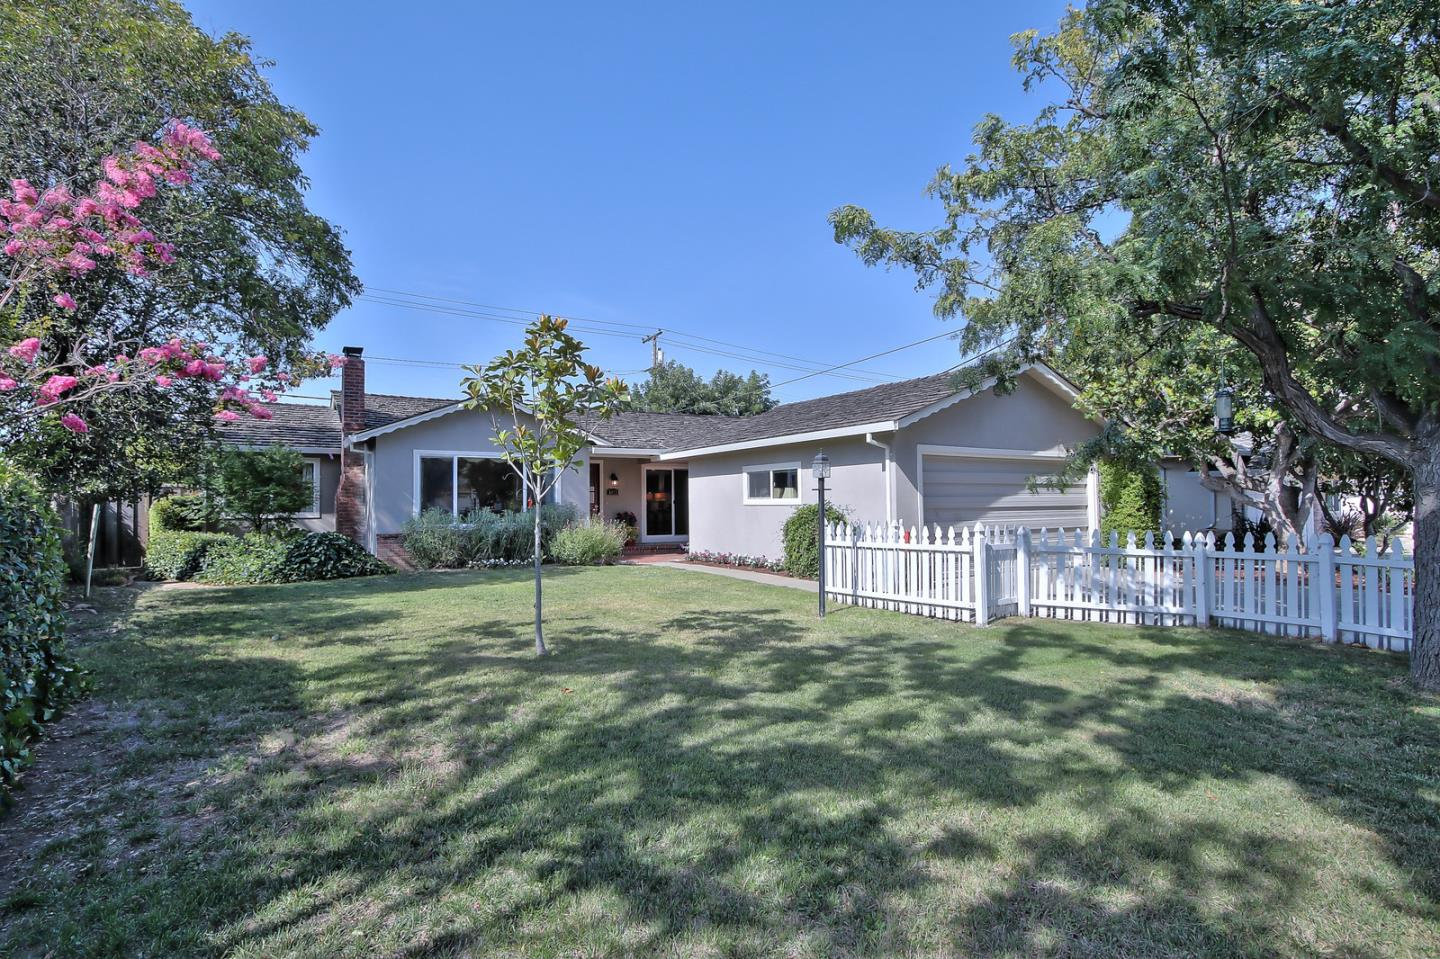 3423 Walton Way, SAN JOSE, CA 95117